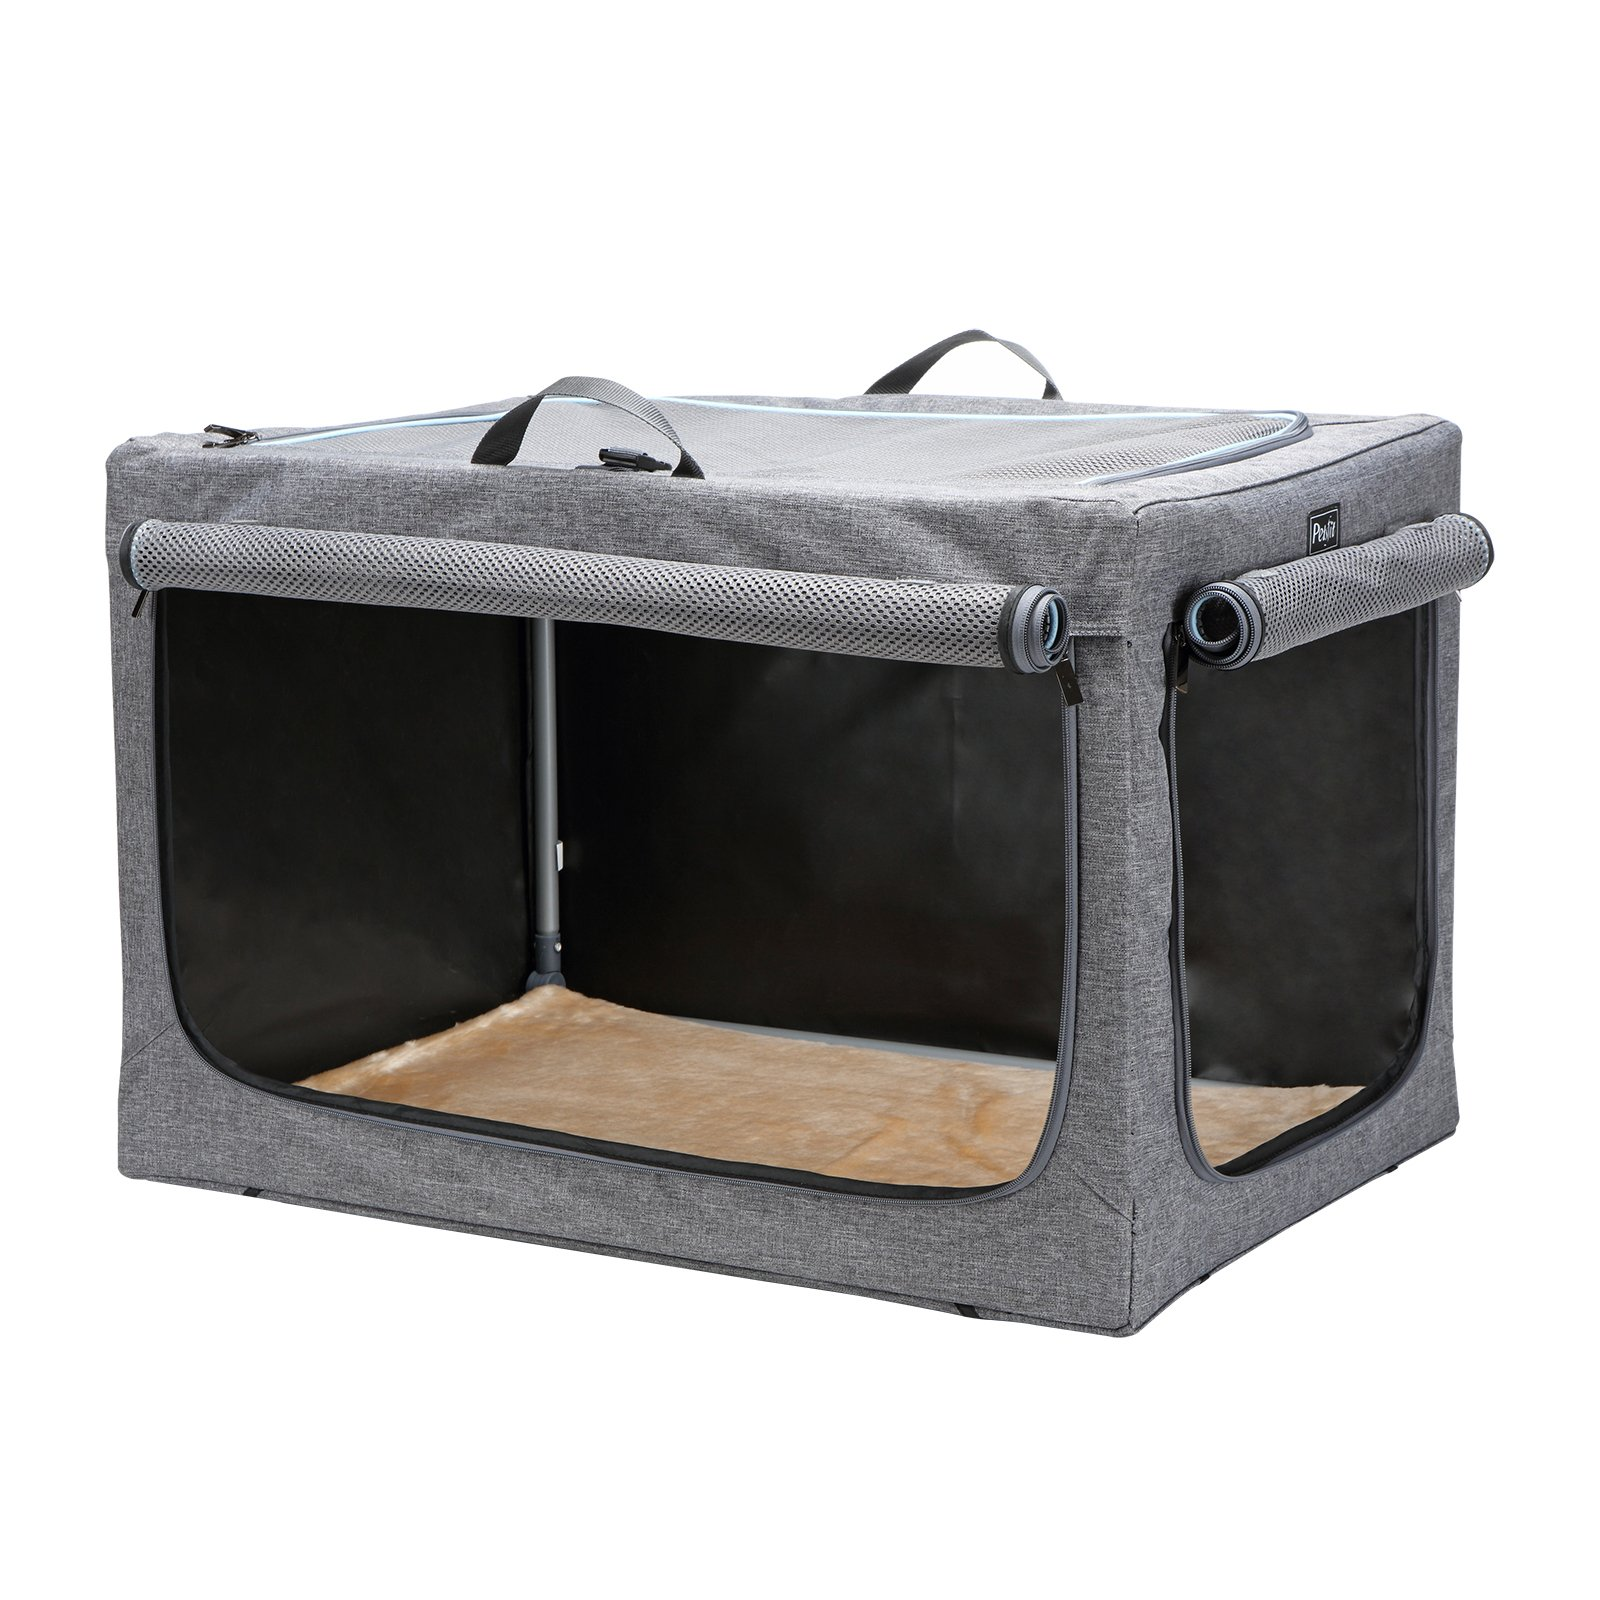 Petsfit Portable Soft Large Dog Crate Travle Dog Crate for Medium to Large Dog Soft Sided Pet Crate Grey 36'' LX 24'' WX 23'' H by Petsfit